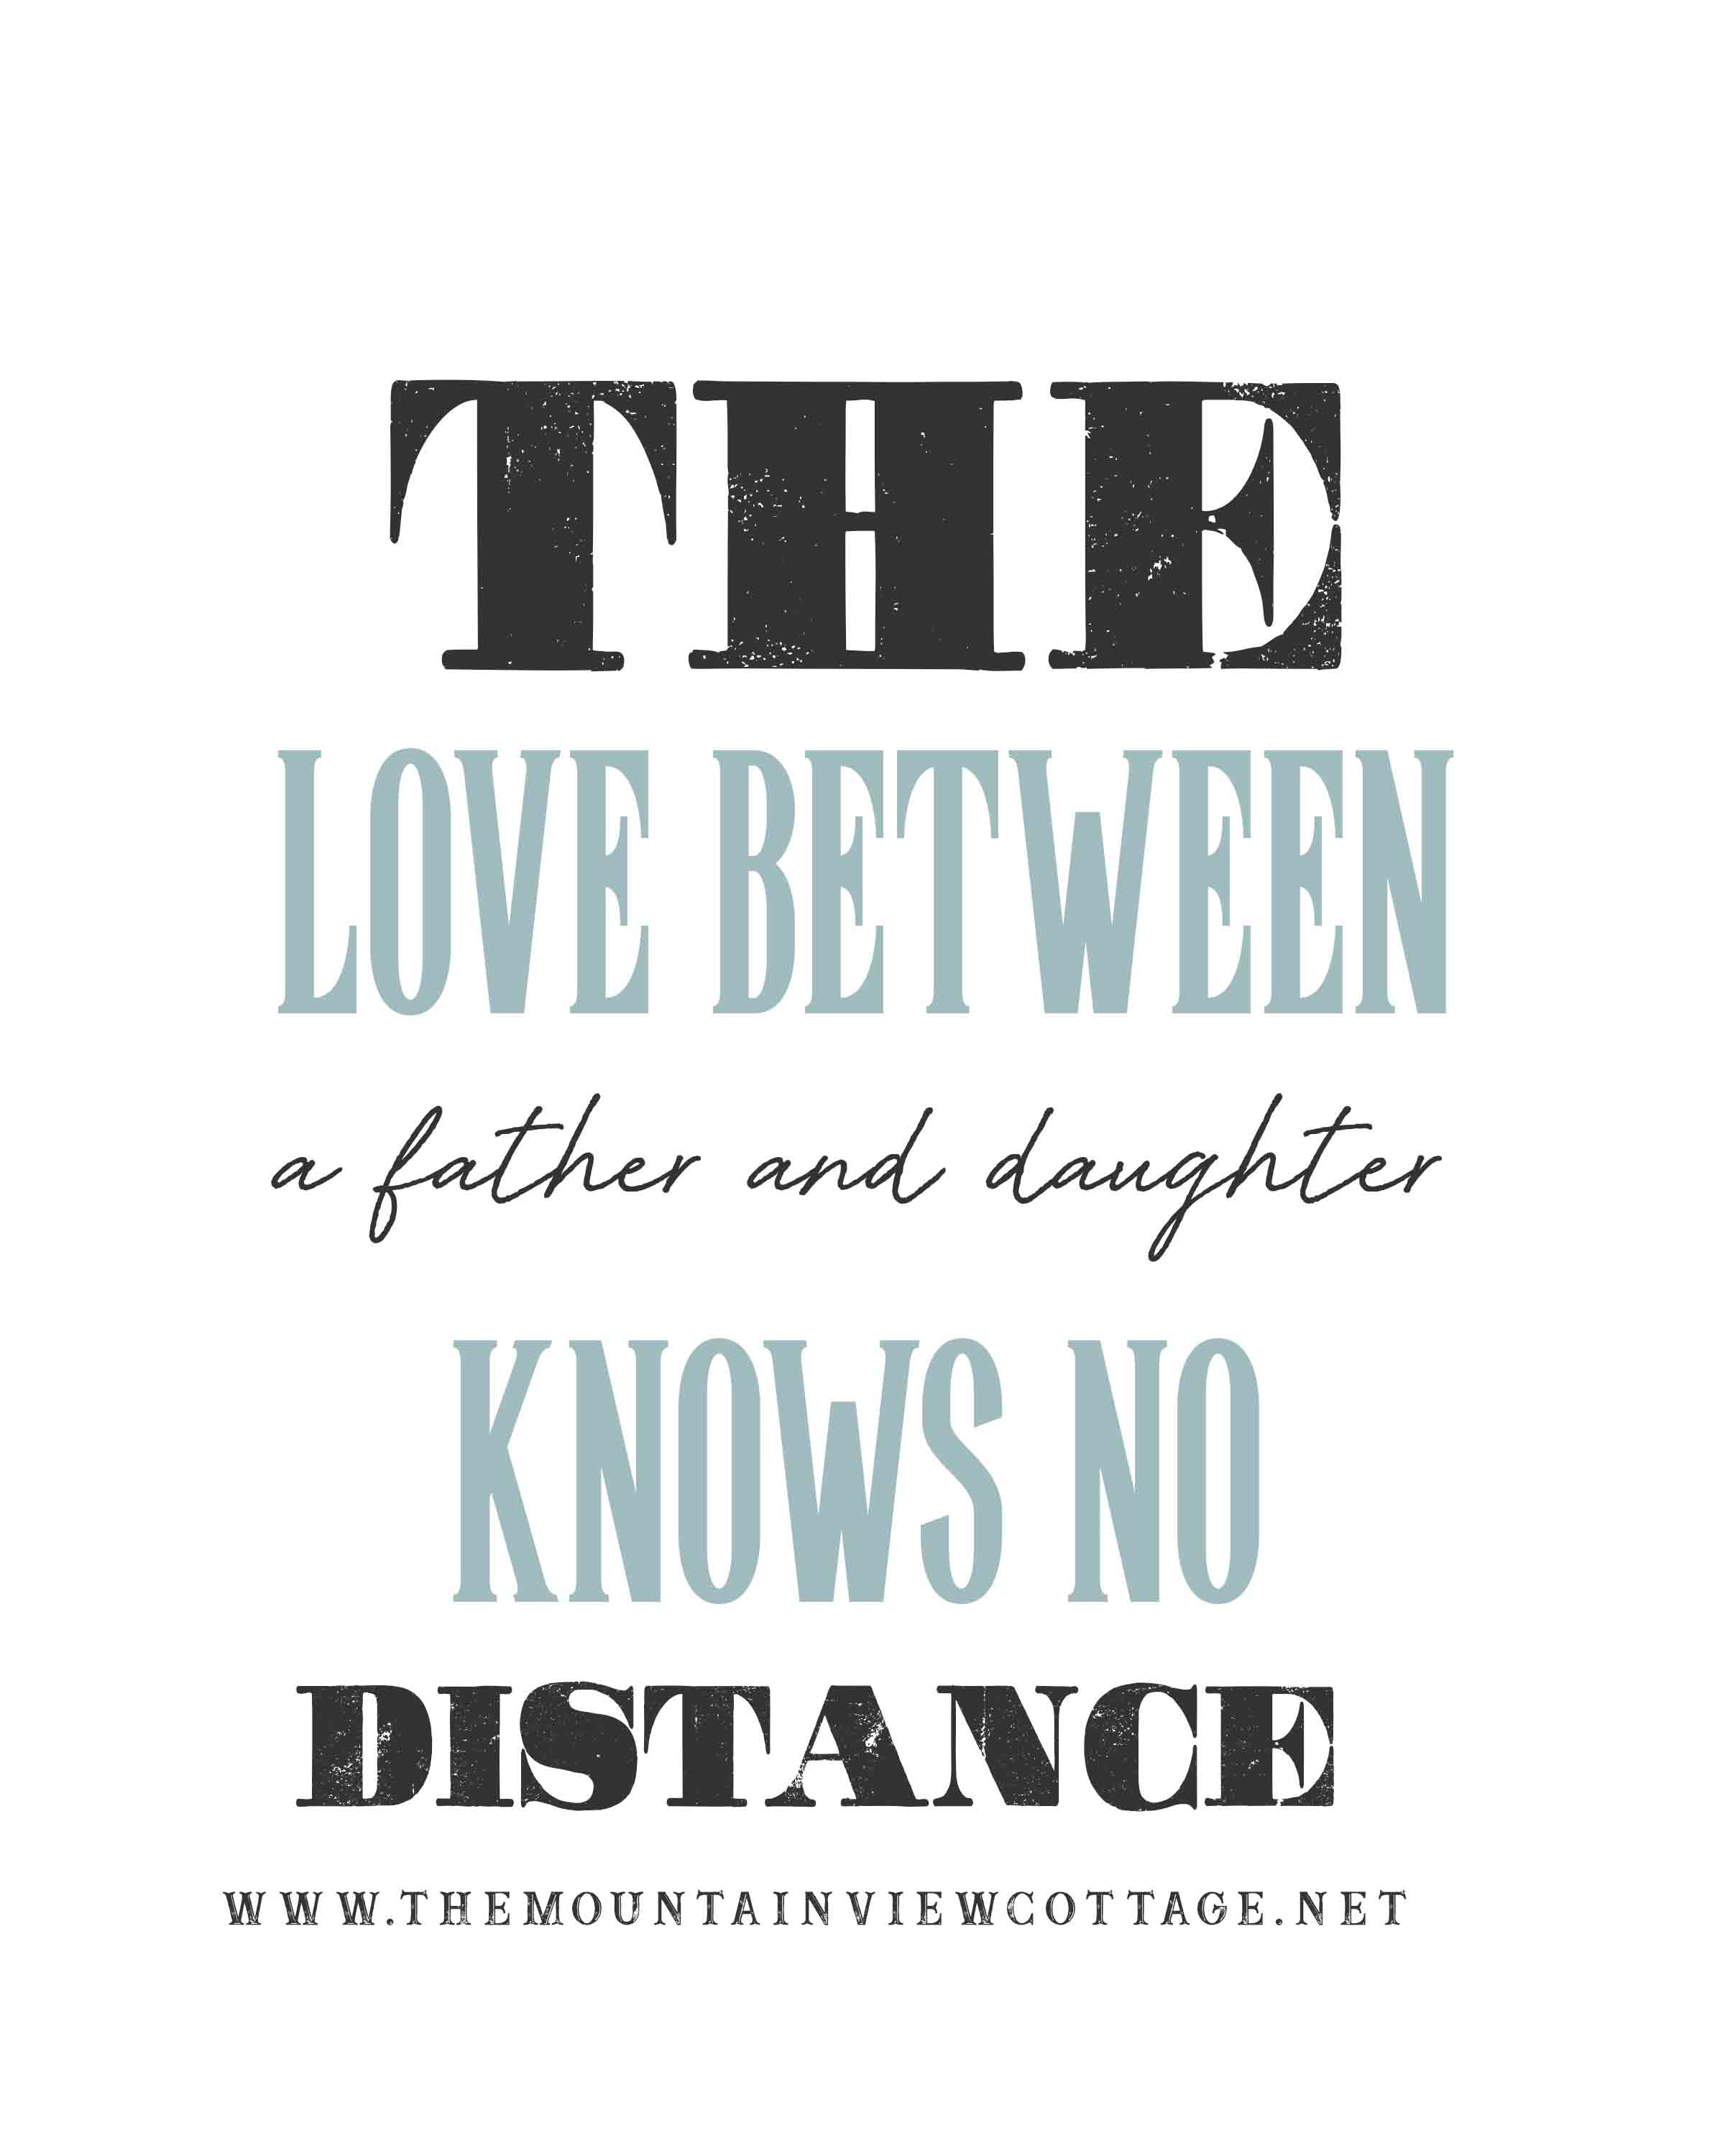 25 Dad Quotes To Inspire With Images The Mountain View Cottage